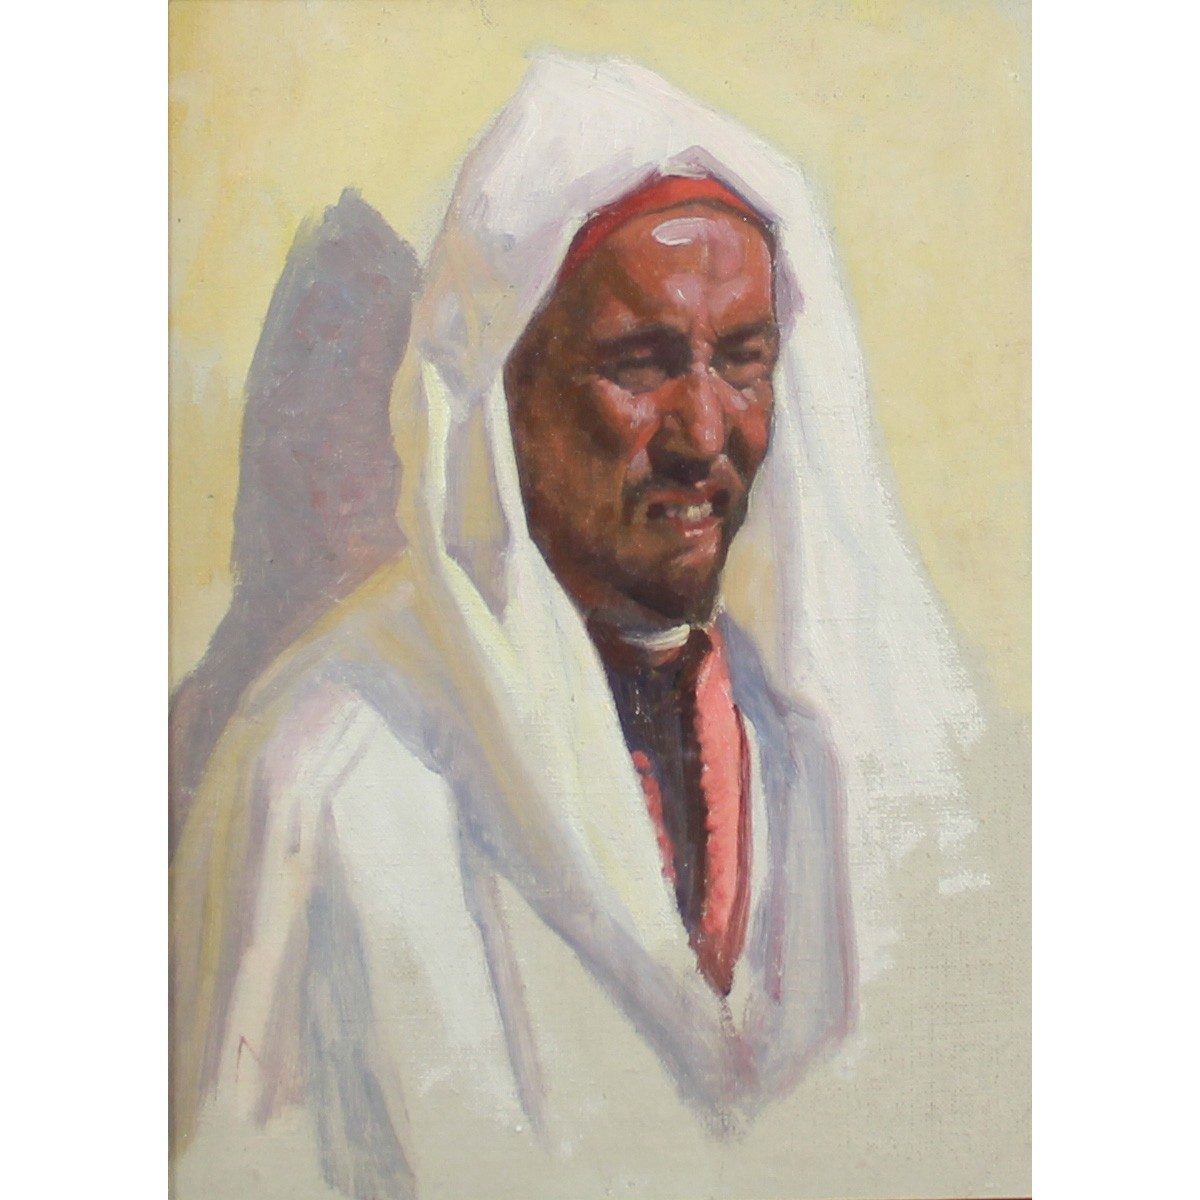 Lot 23 - Coutts, Gordon 1868-1937 Scottish AR, Portrait of an Arab Man.